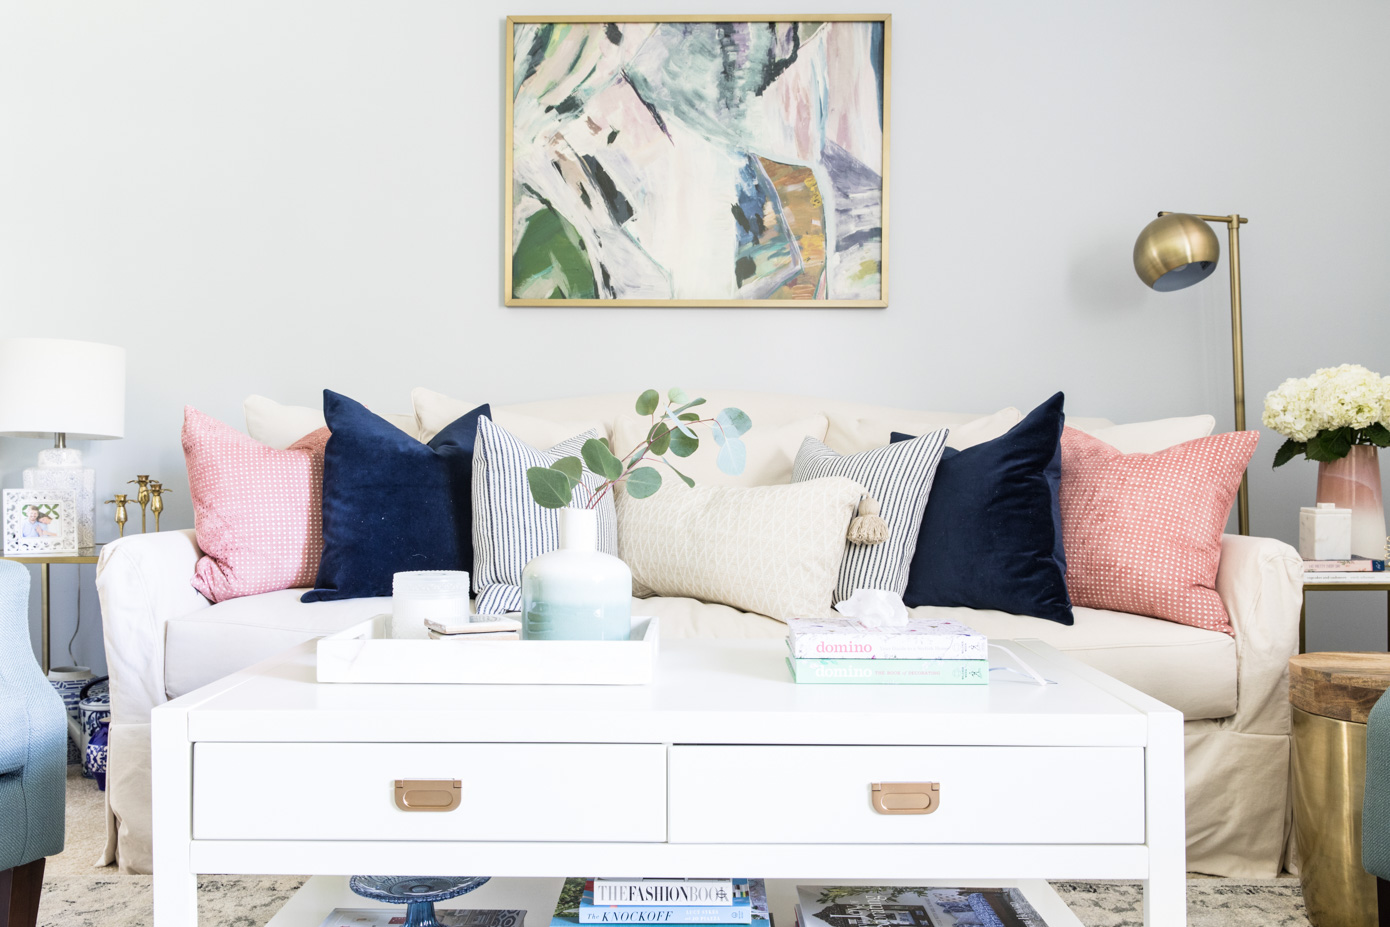 Glitter Guide x Louella Reese Home Reveal | Casual Feminine Decor | Louella Reese Life & Style Blog